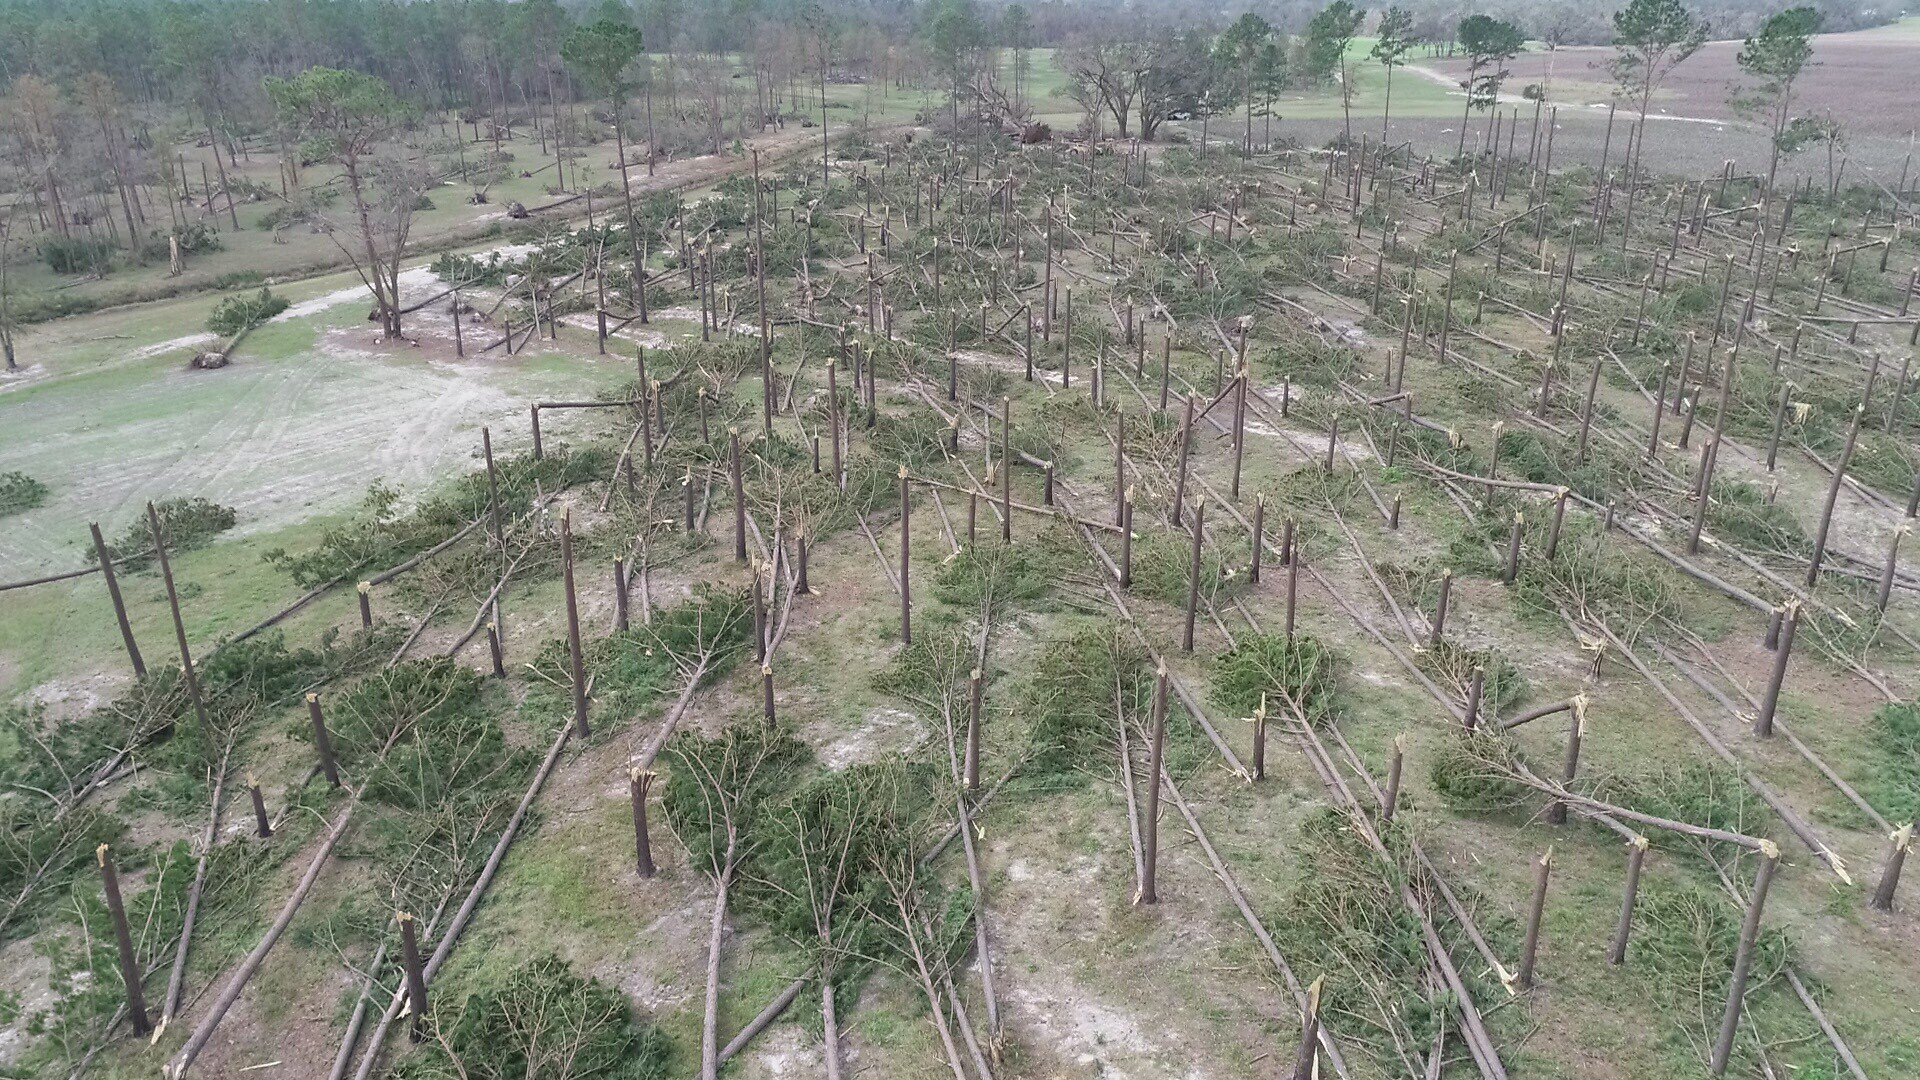 Timber loss from Hurricane Michael in Alabama